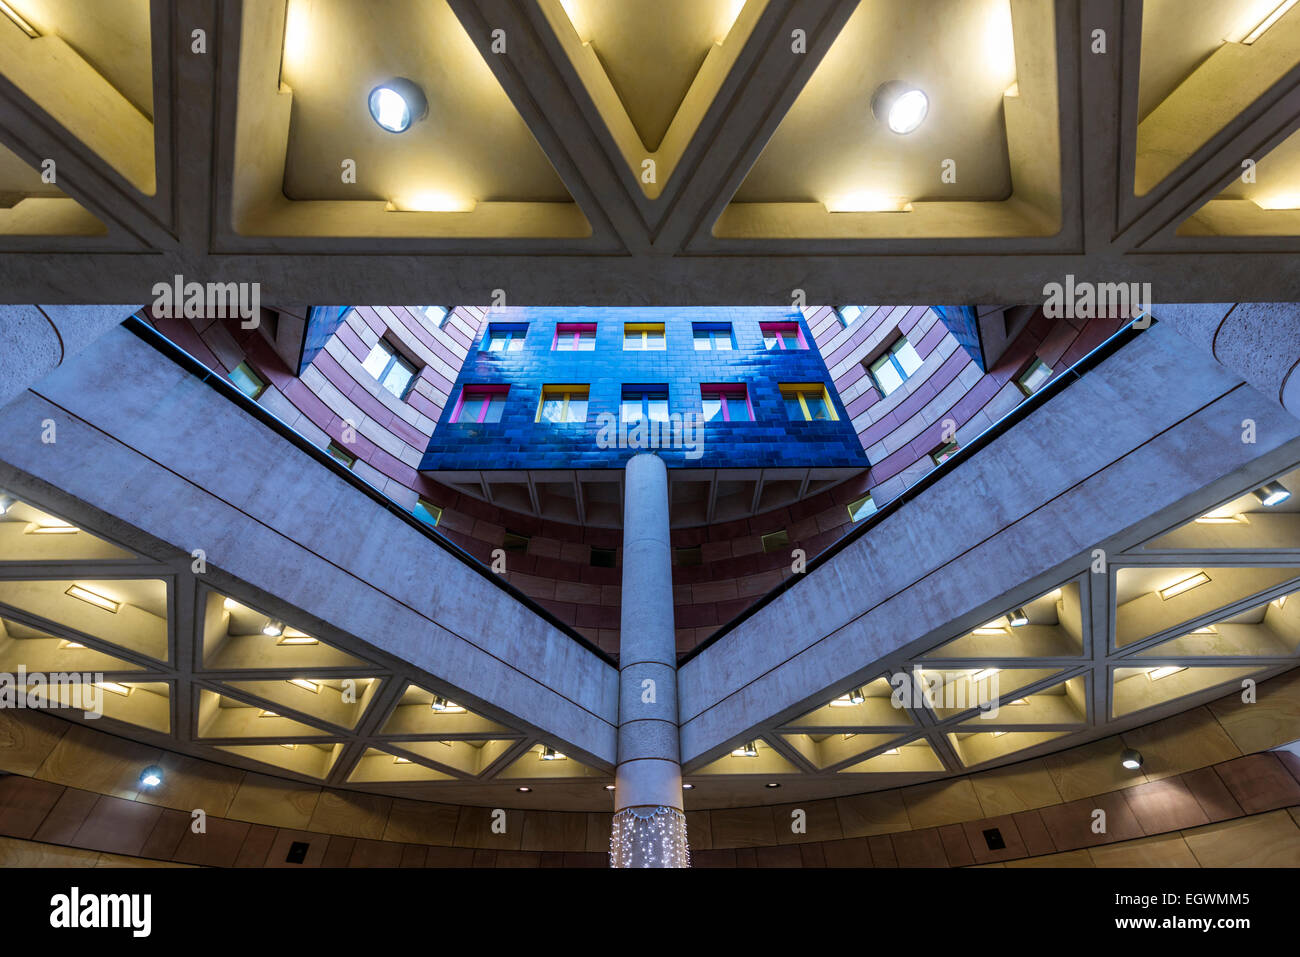 Inside 1 Poultry, looking up through the central atrium, London, UK - Stock Image